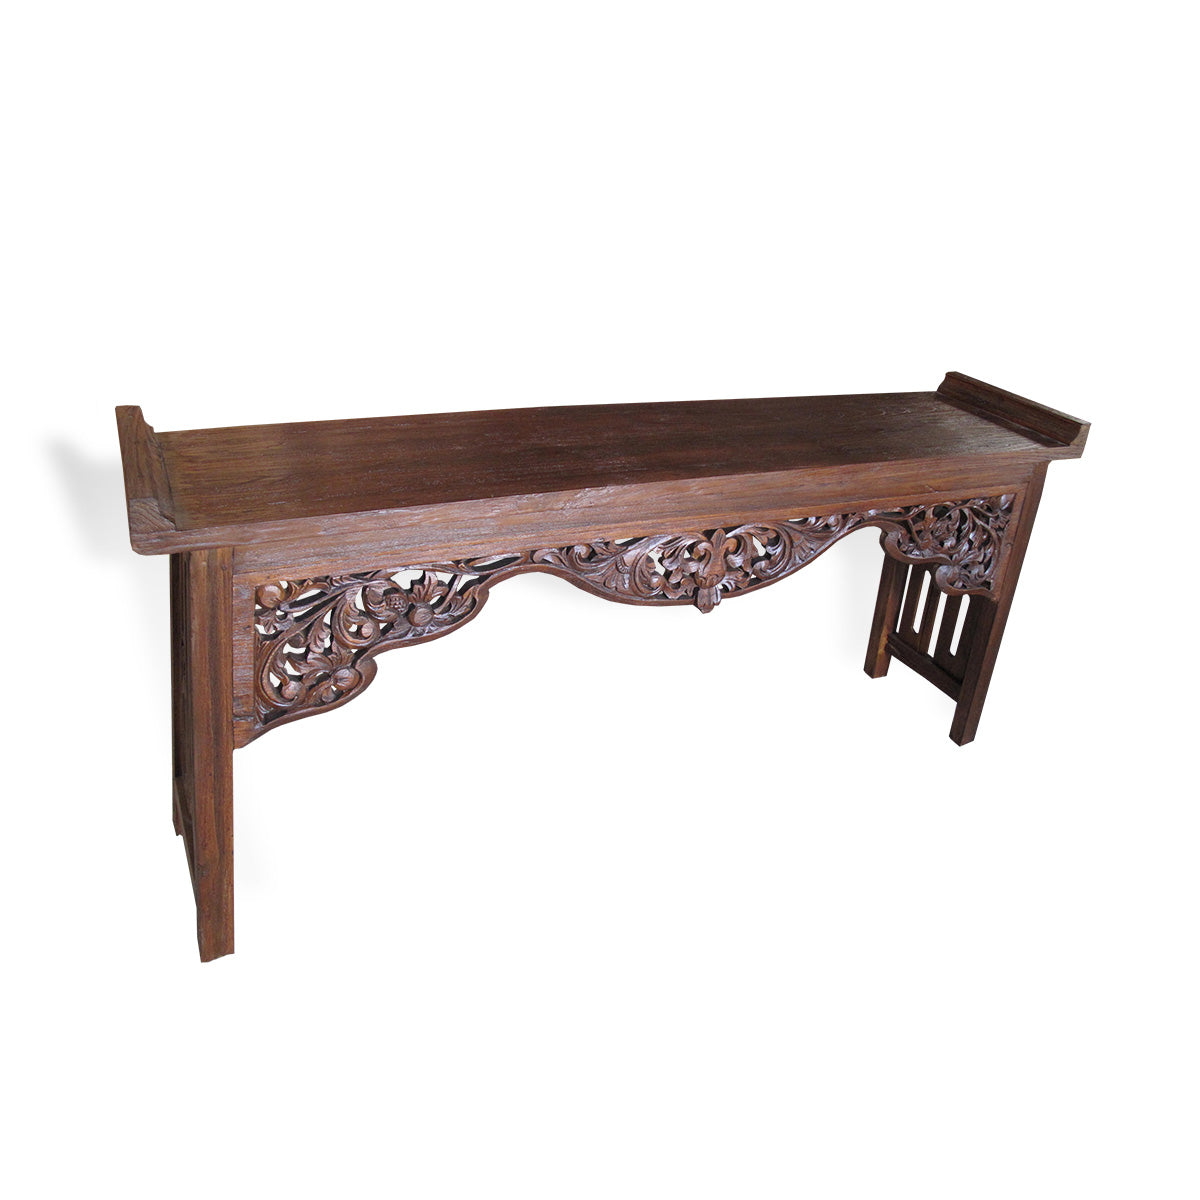 LAC047-1 CARVED RECYCLED TEAK CONSOLE